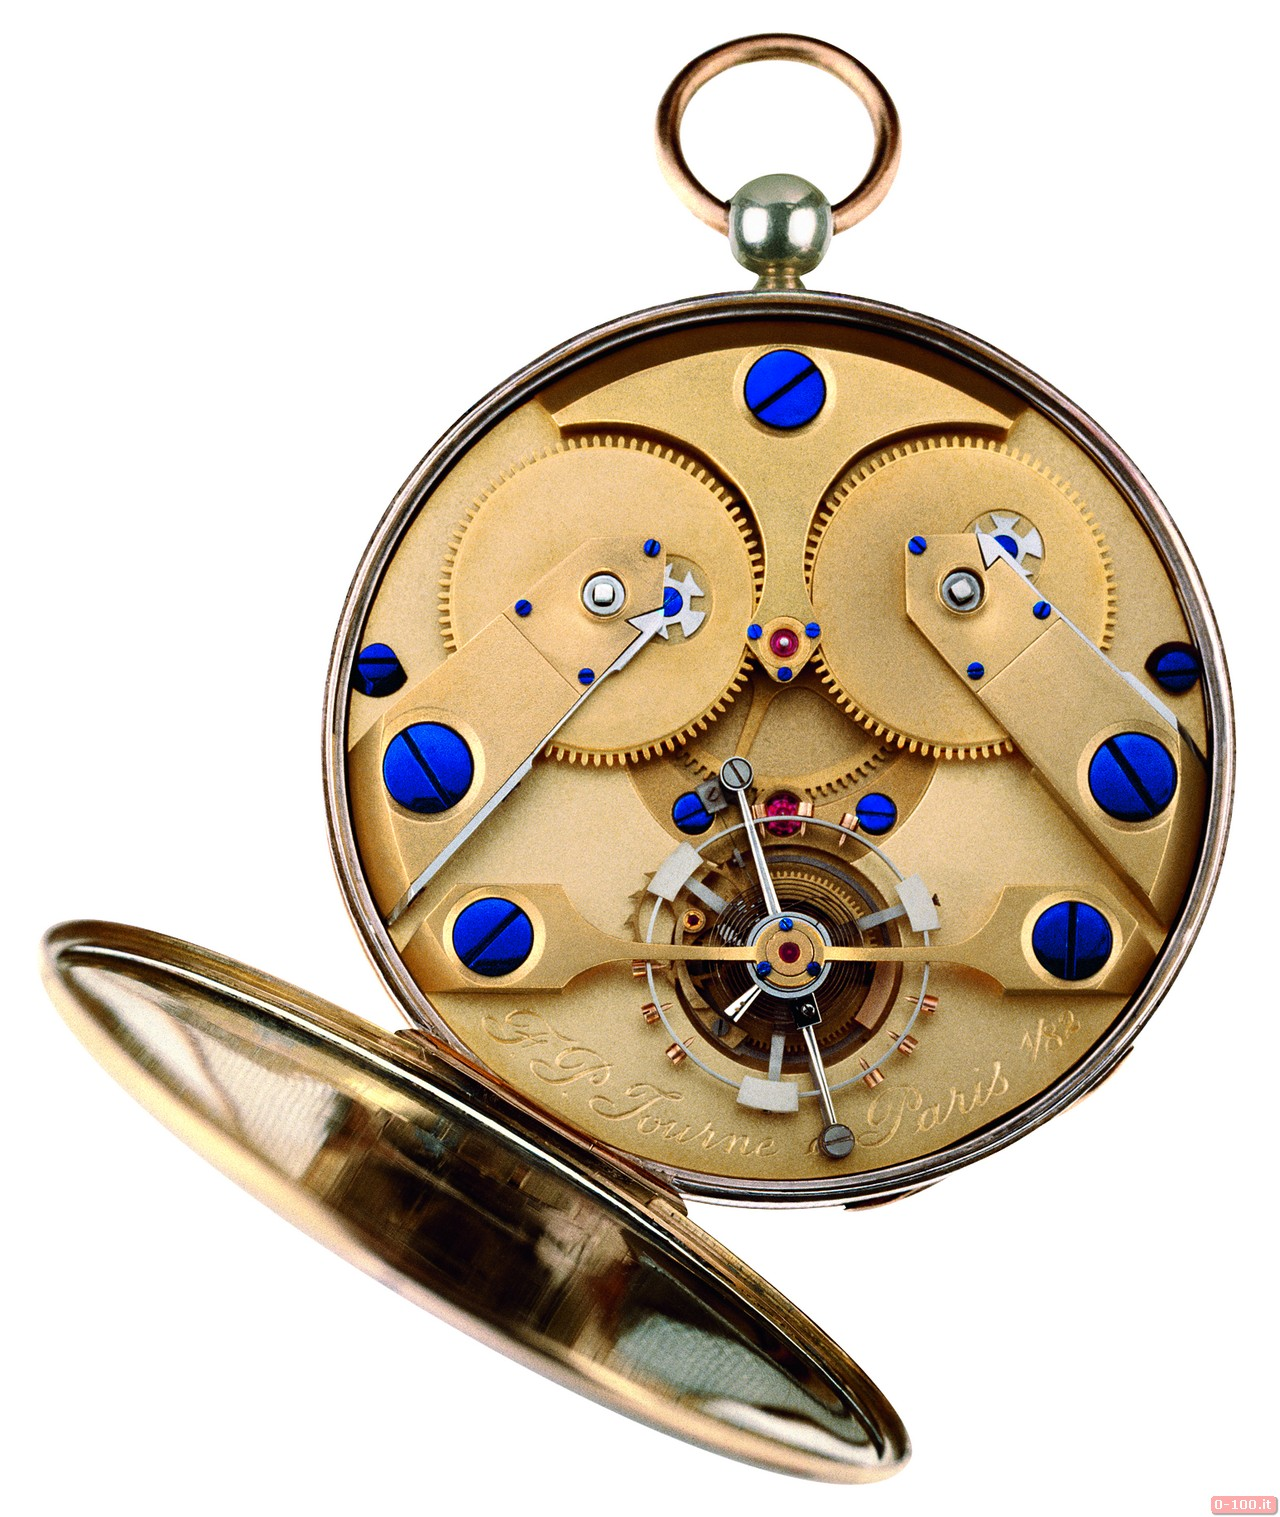 anniversary-edition-2013-of-the-first-pocket-watch-with-tourbillon-by-francois-paul-journe__0-1002